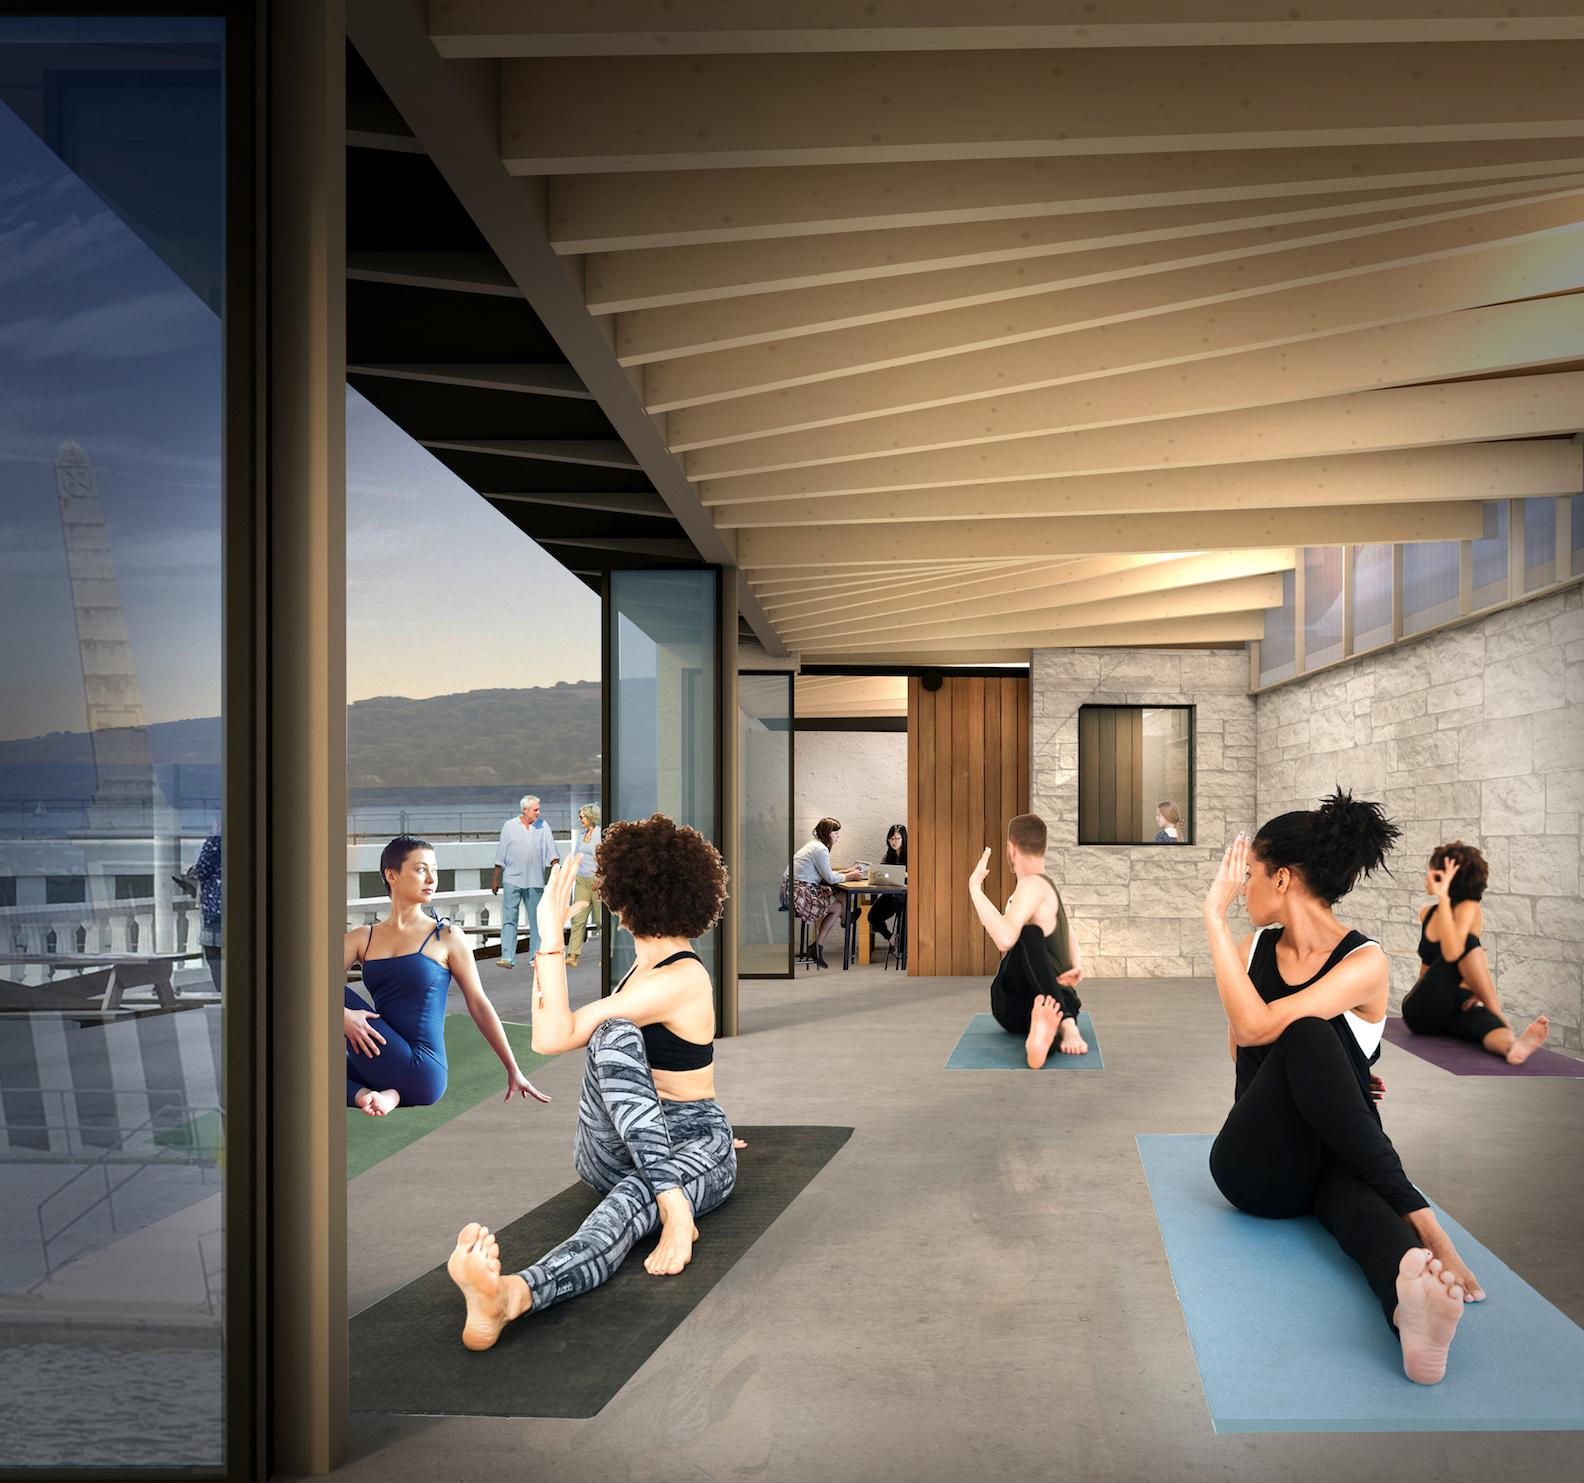 A new large multi-purpose hall will open up directly onto the promenade in the summer months, and will be used for community activities, including exercise or art classes